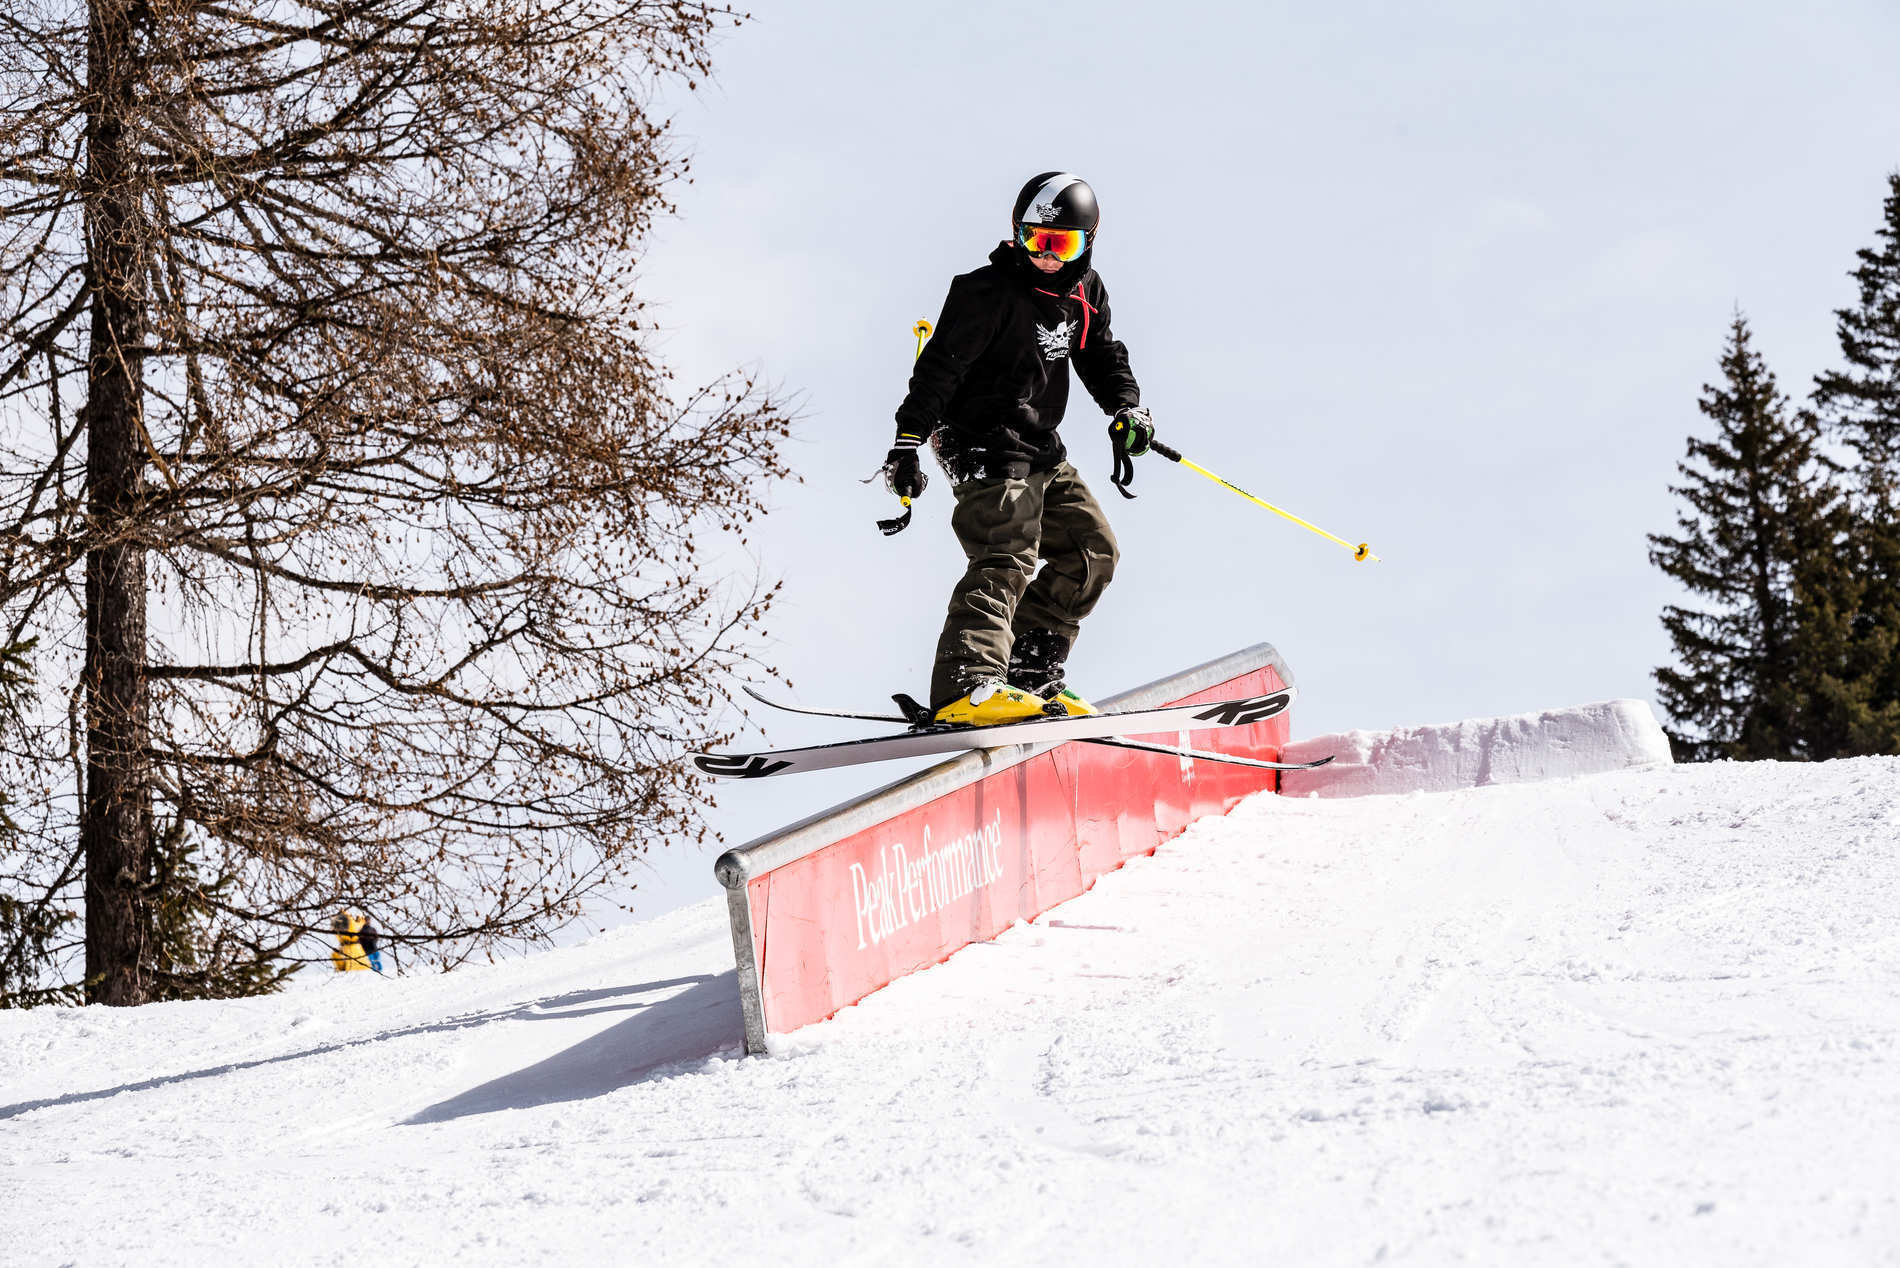 web alta badia 09 03 2019 action fs unknown rider christian riefenberg qparks 32